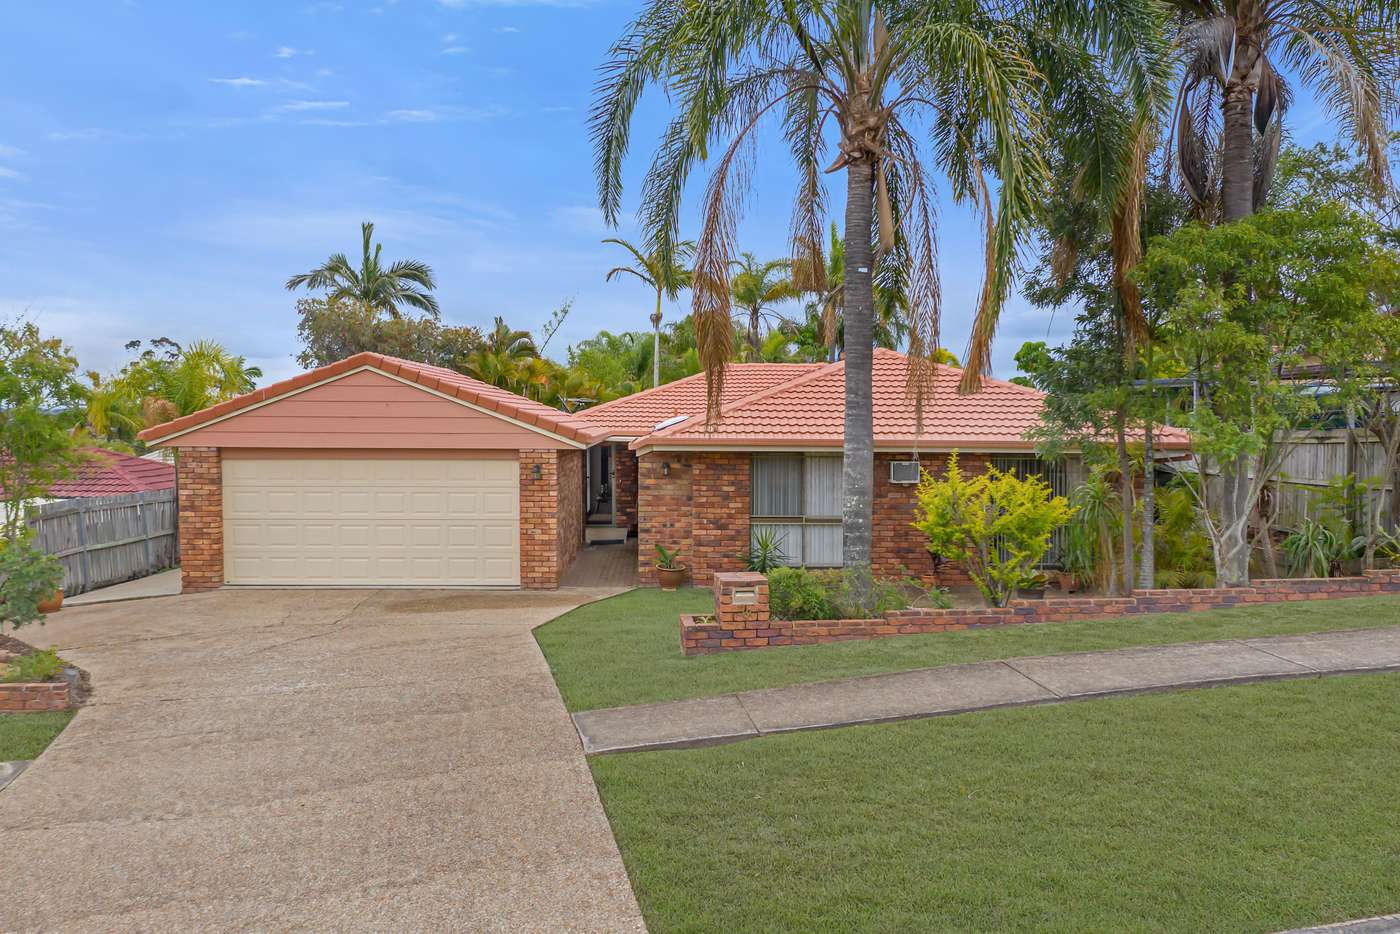 Main view of Homely house listing, 58 Coleman Crescent, Springwood QLD 4127